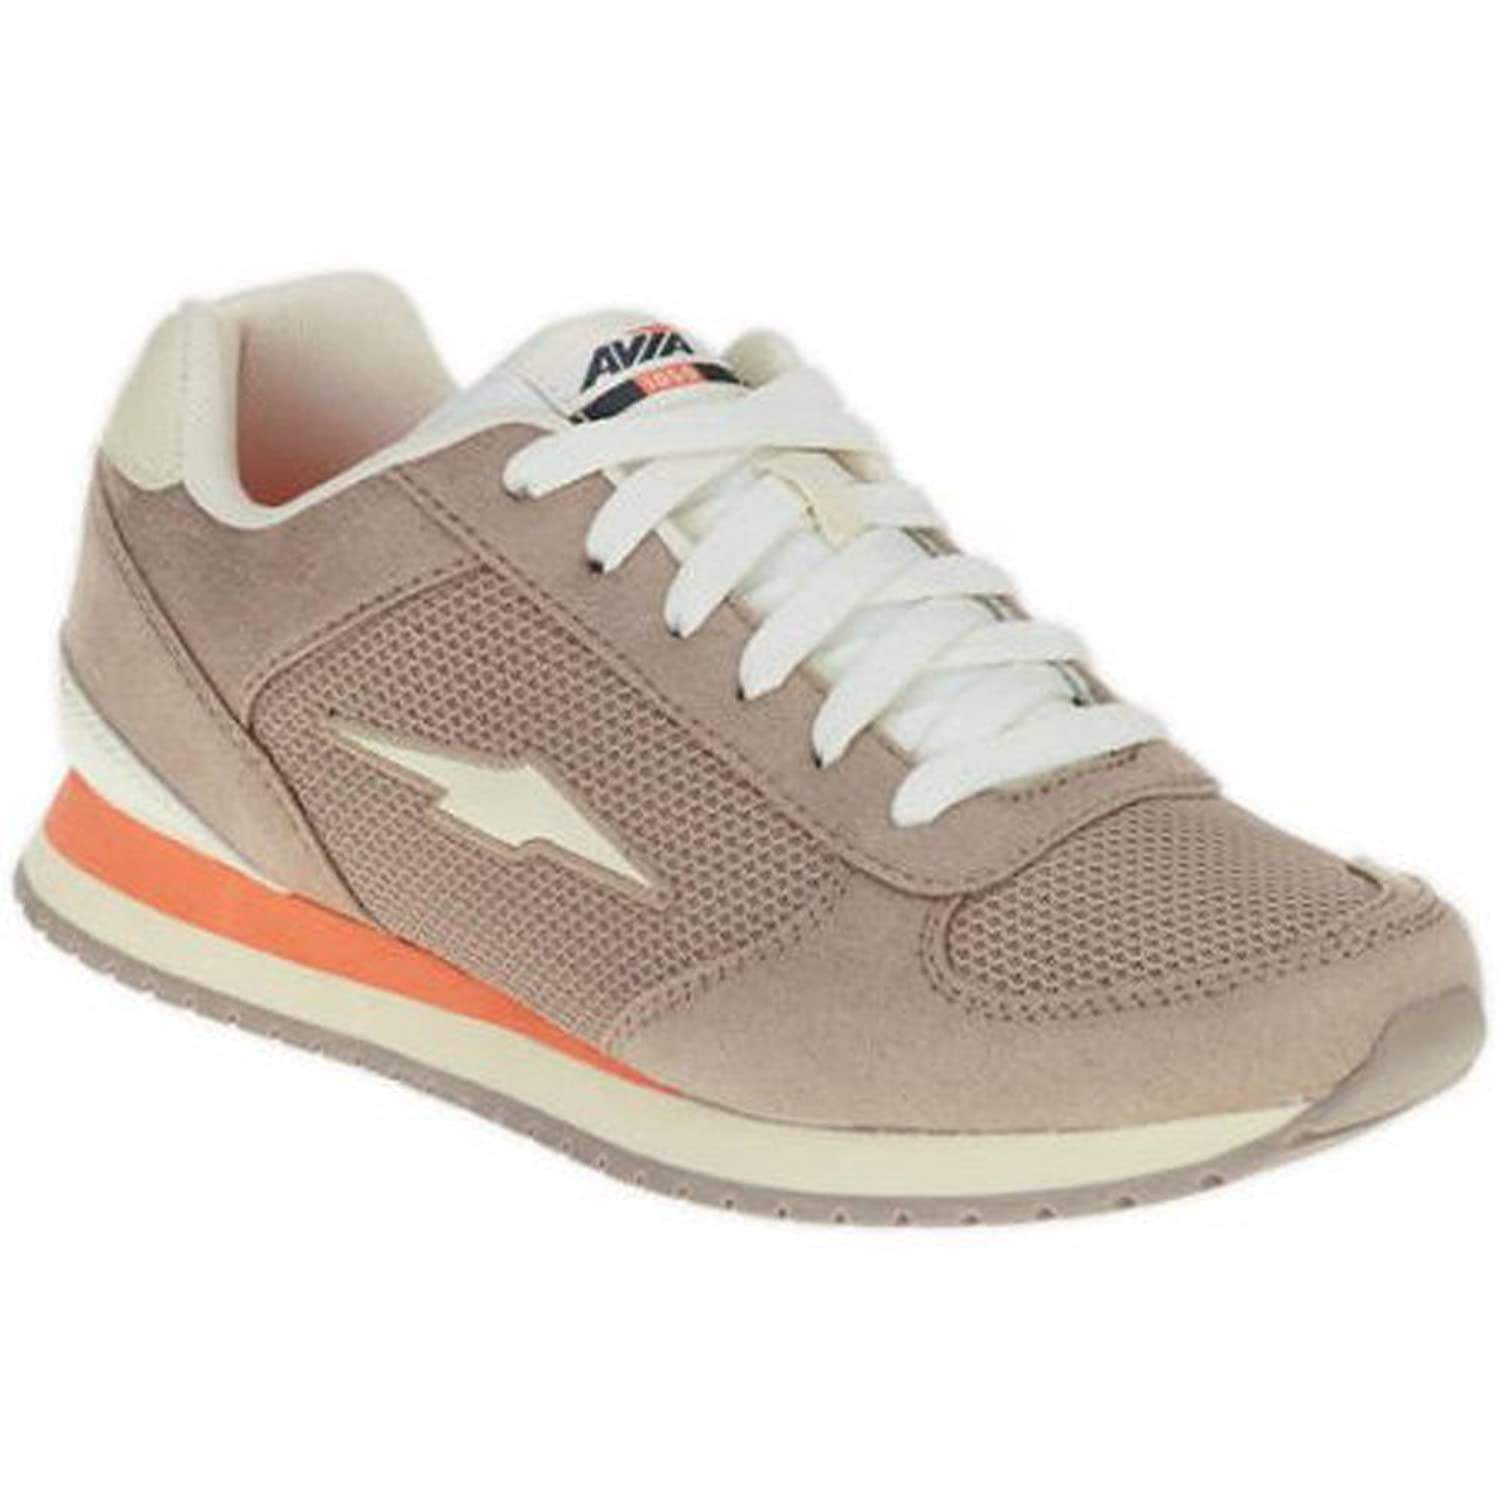 Avia Women's Retro Jogger Shoe Tan / Gray